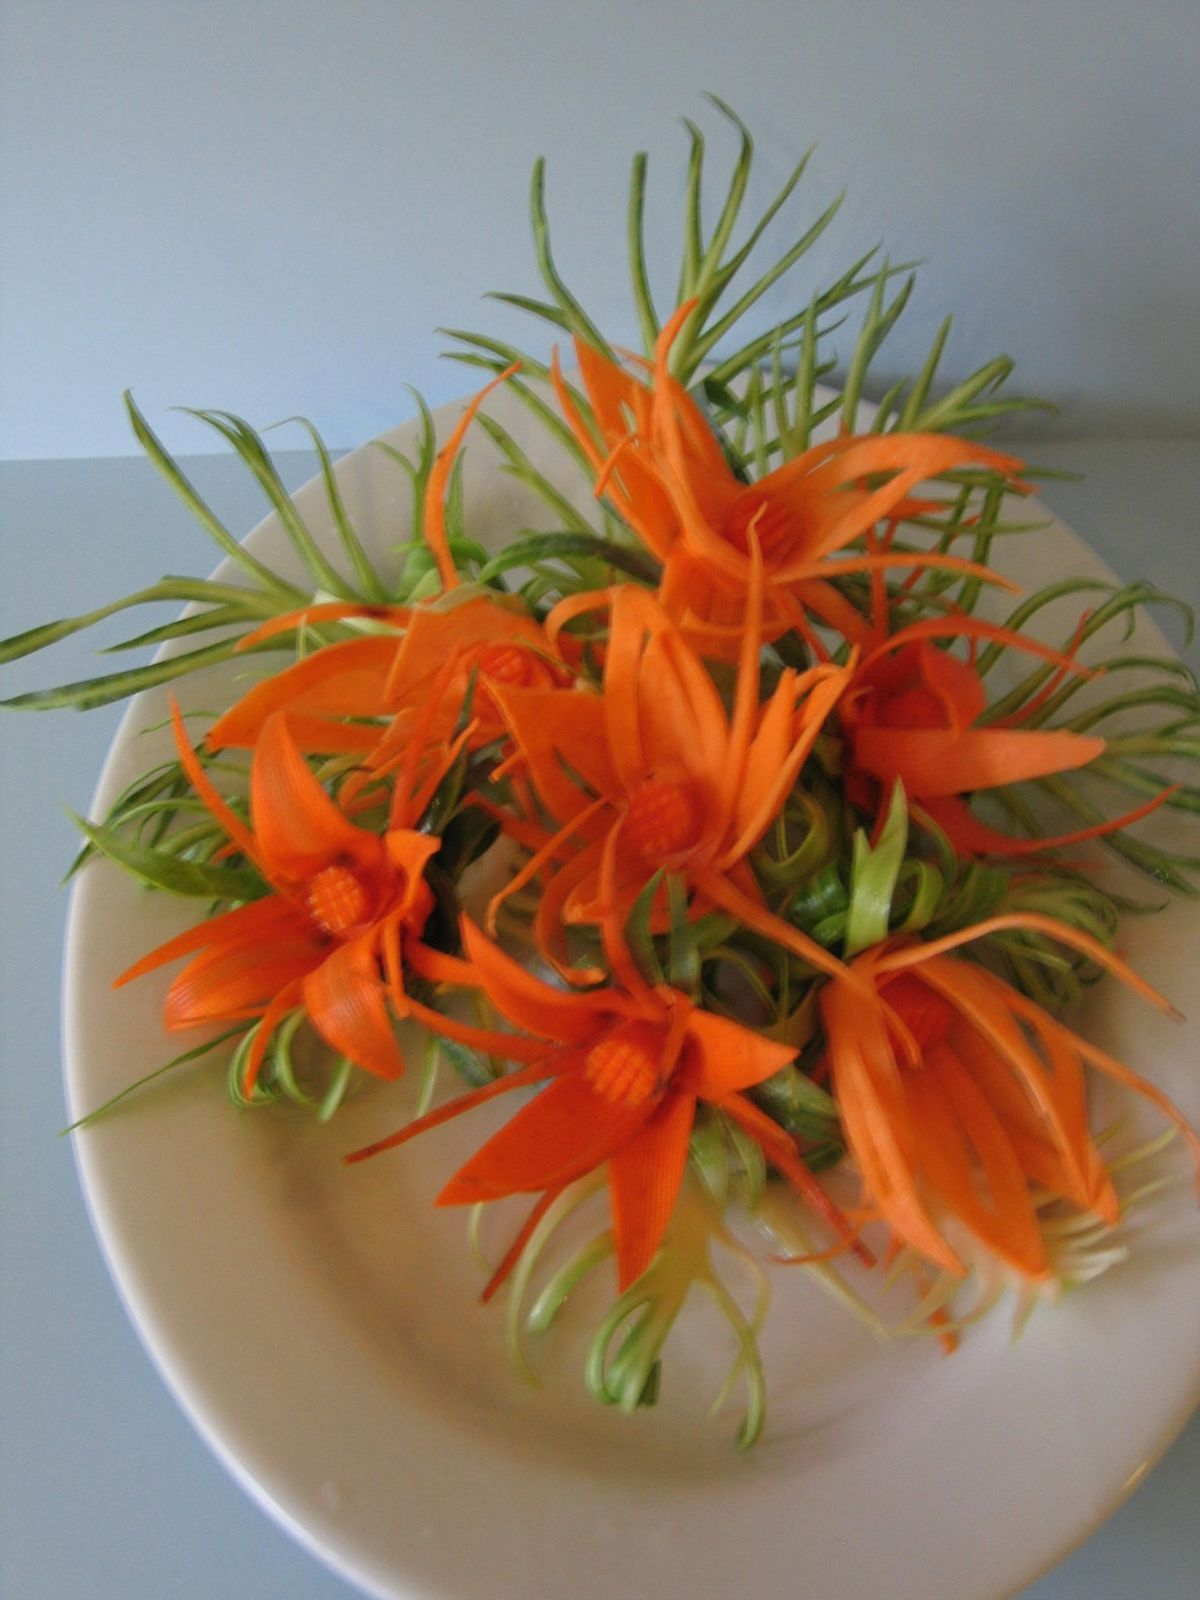 Veggie flowers,to pretty to eat>>>ew10